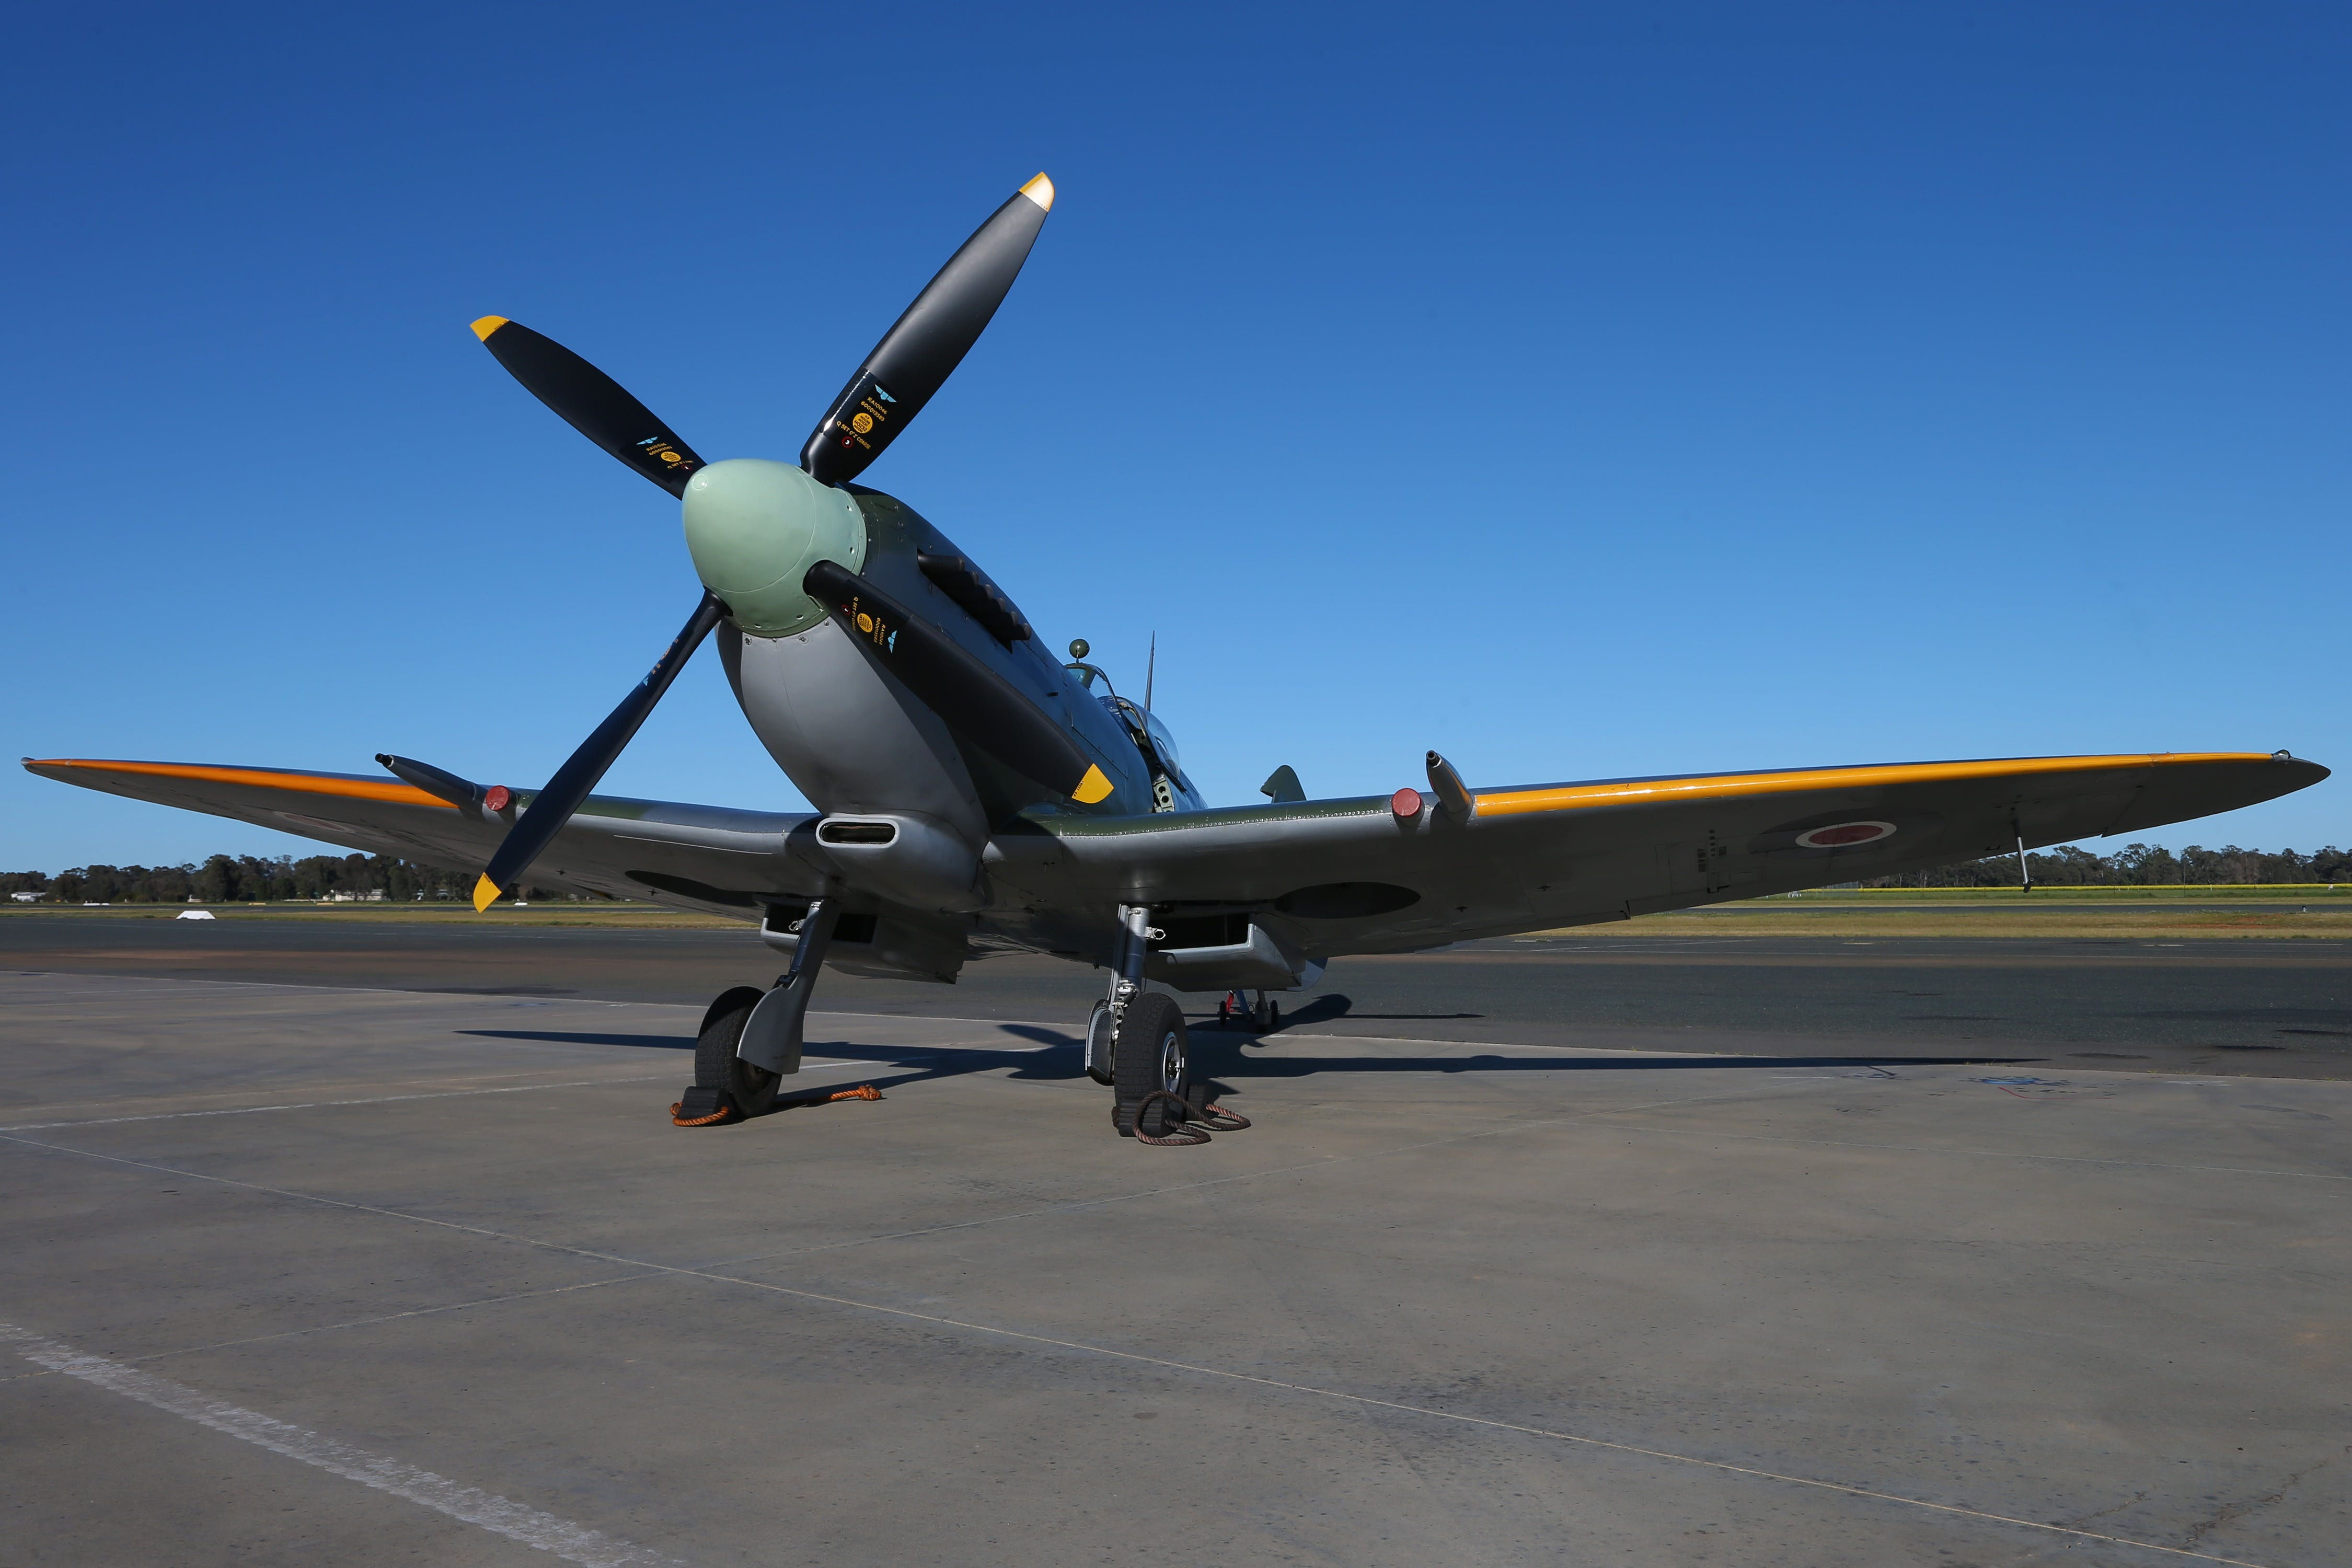 October Weekend Aircraft Showcase - Accommodation Adelaide